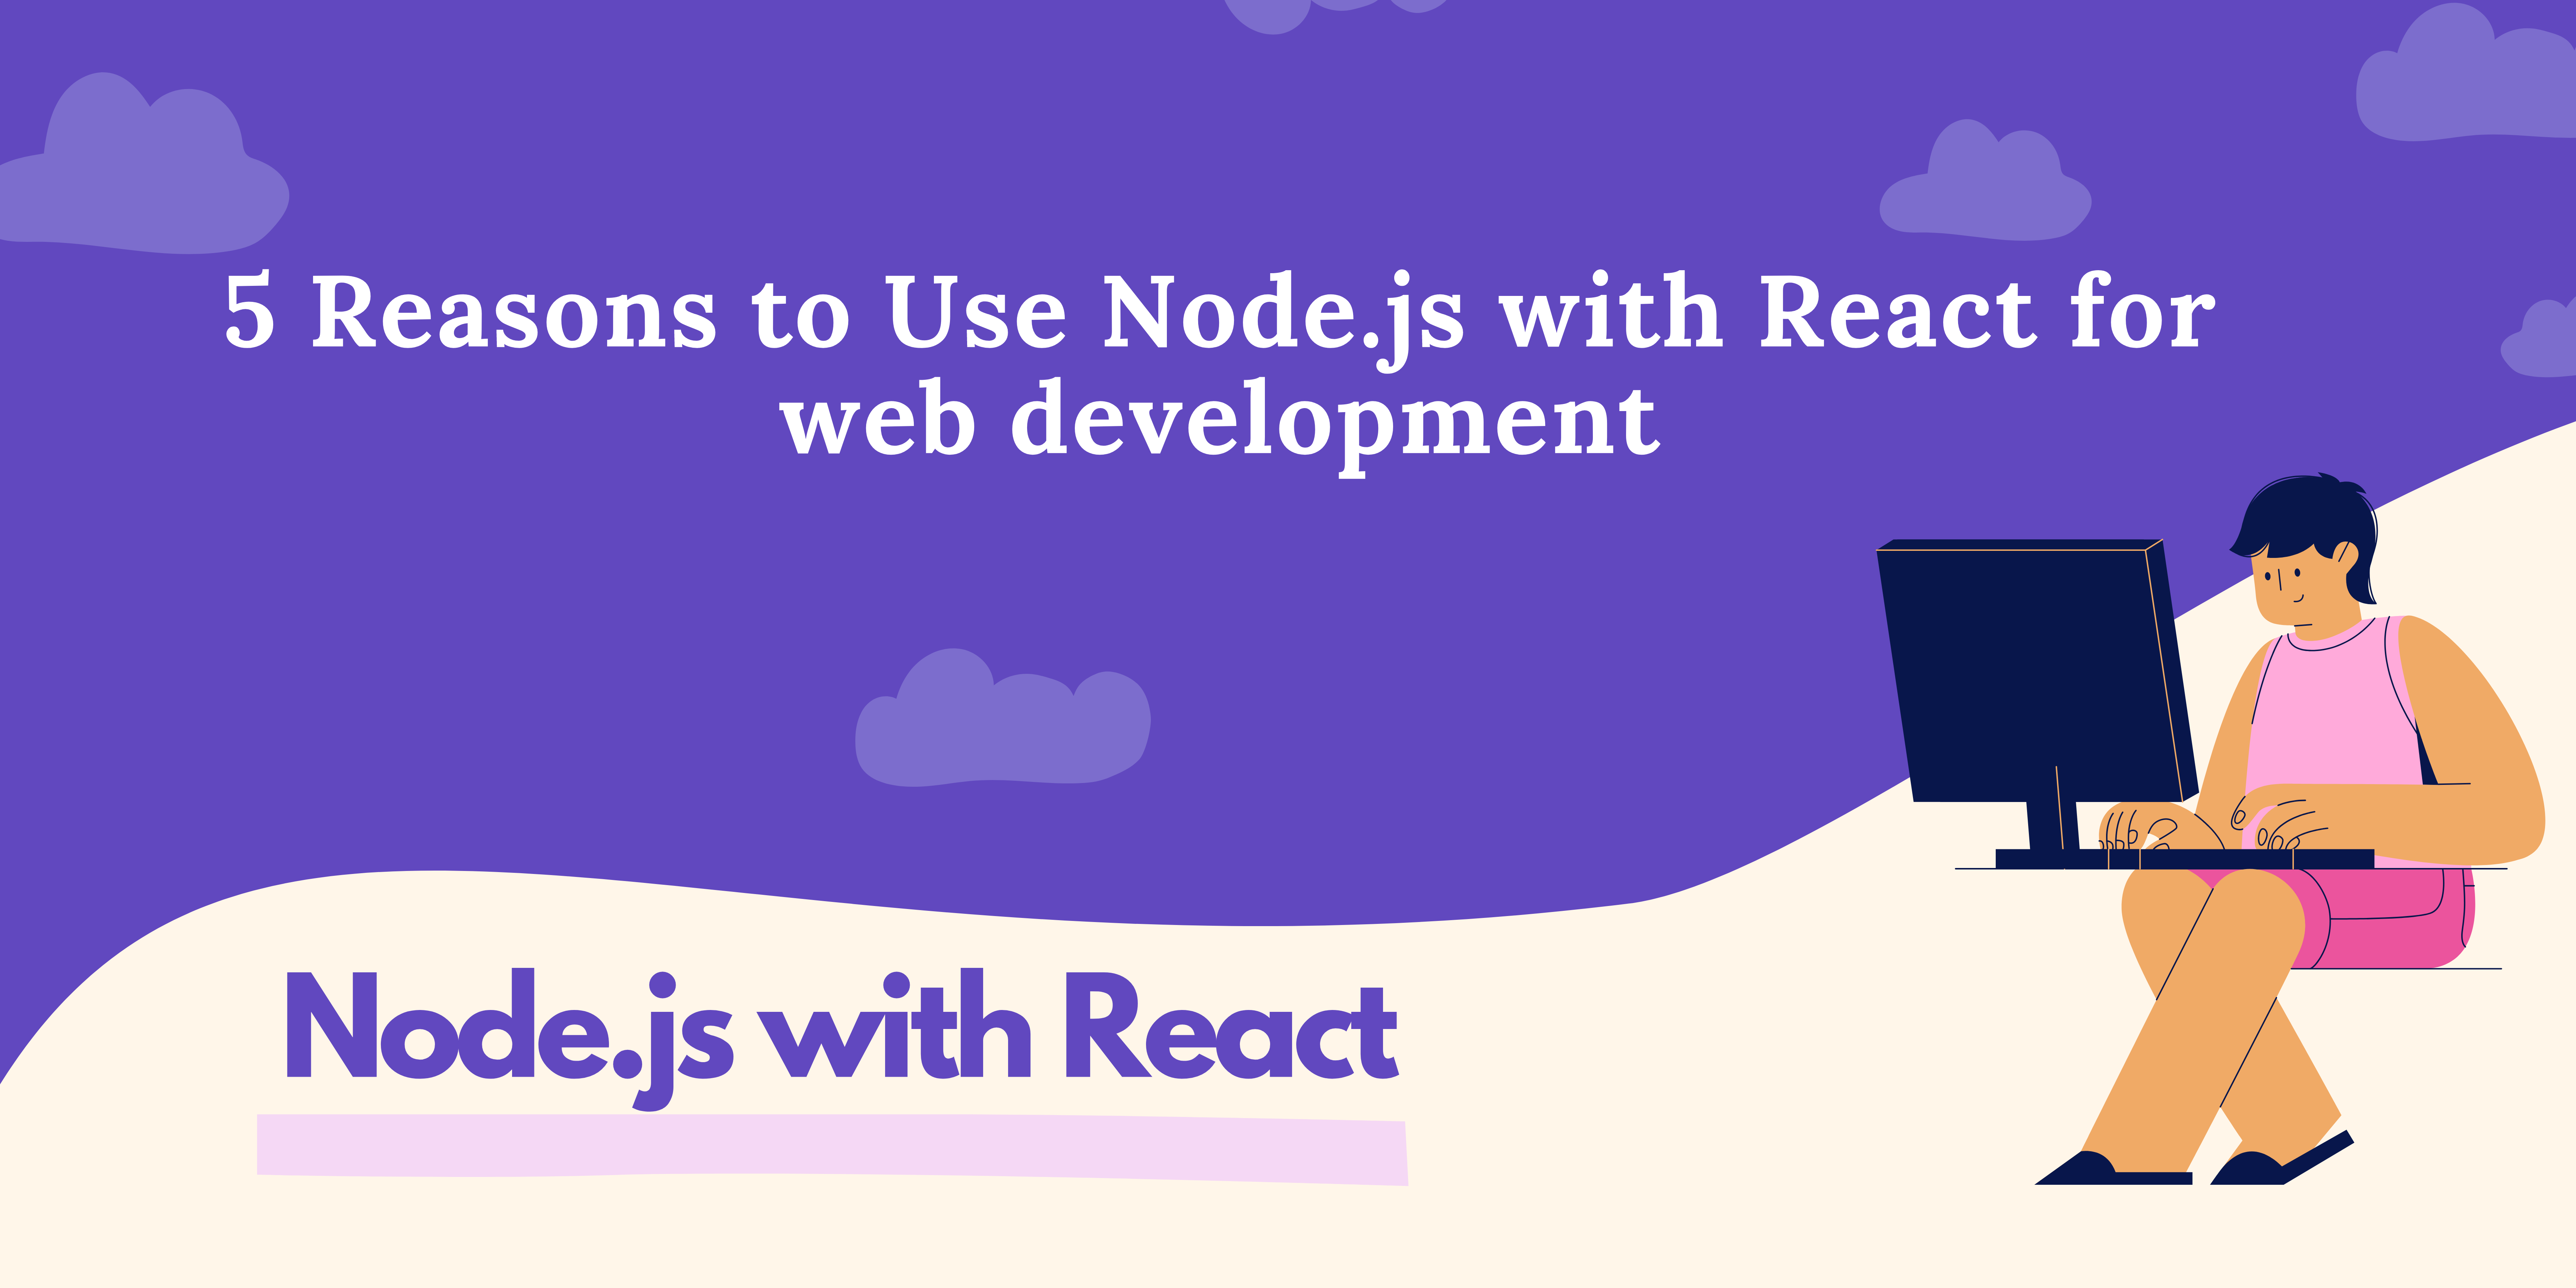 Why to use Node with React